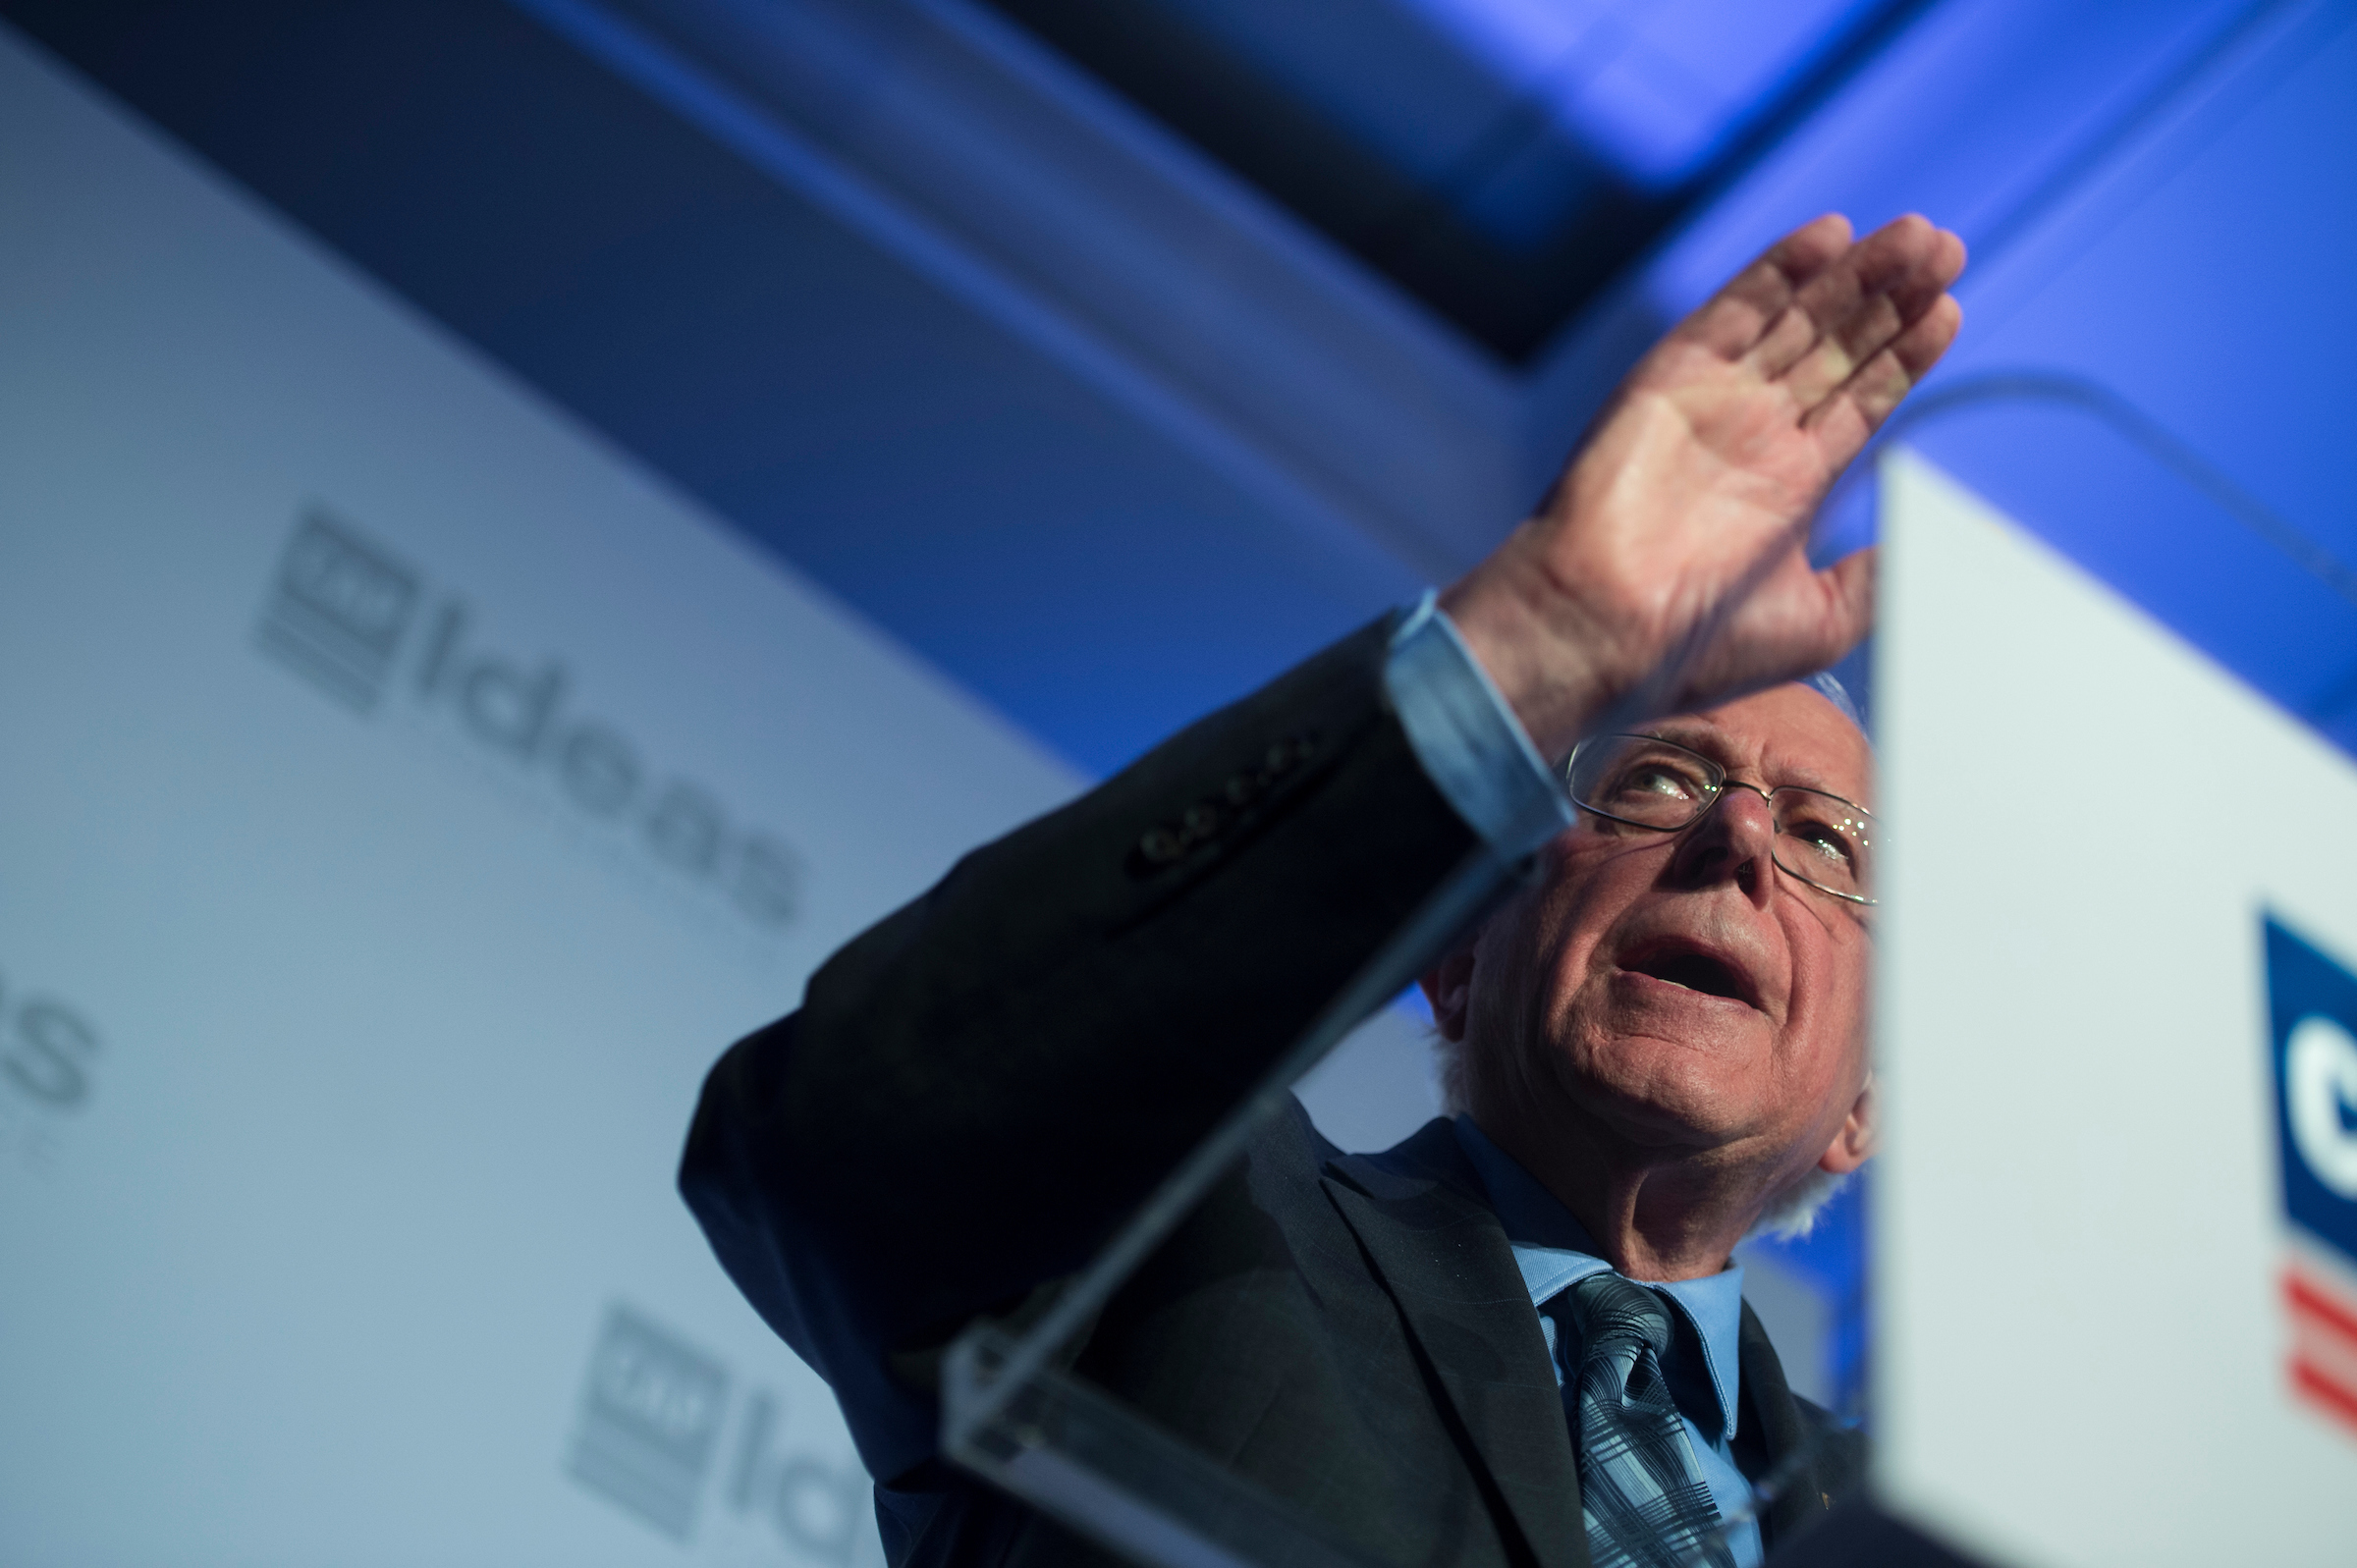 Sen. Bernie Sanders (D-VT) speaks at the Center for American Progress 'Ideas' conference Tuesday May 15, 2018. (Photo by Sarah Silbiger/CQ Roll Call)